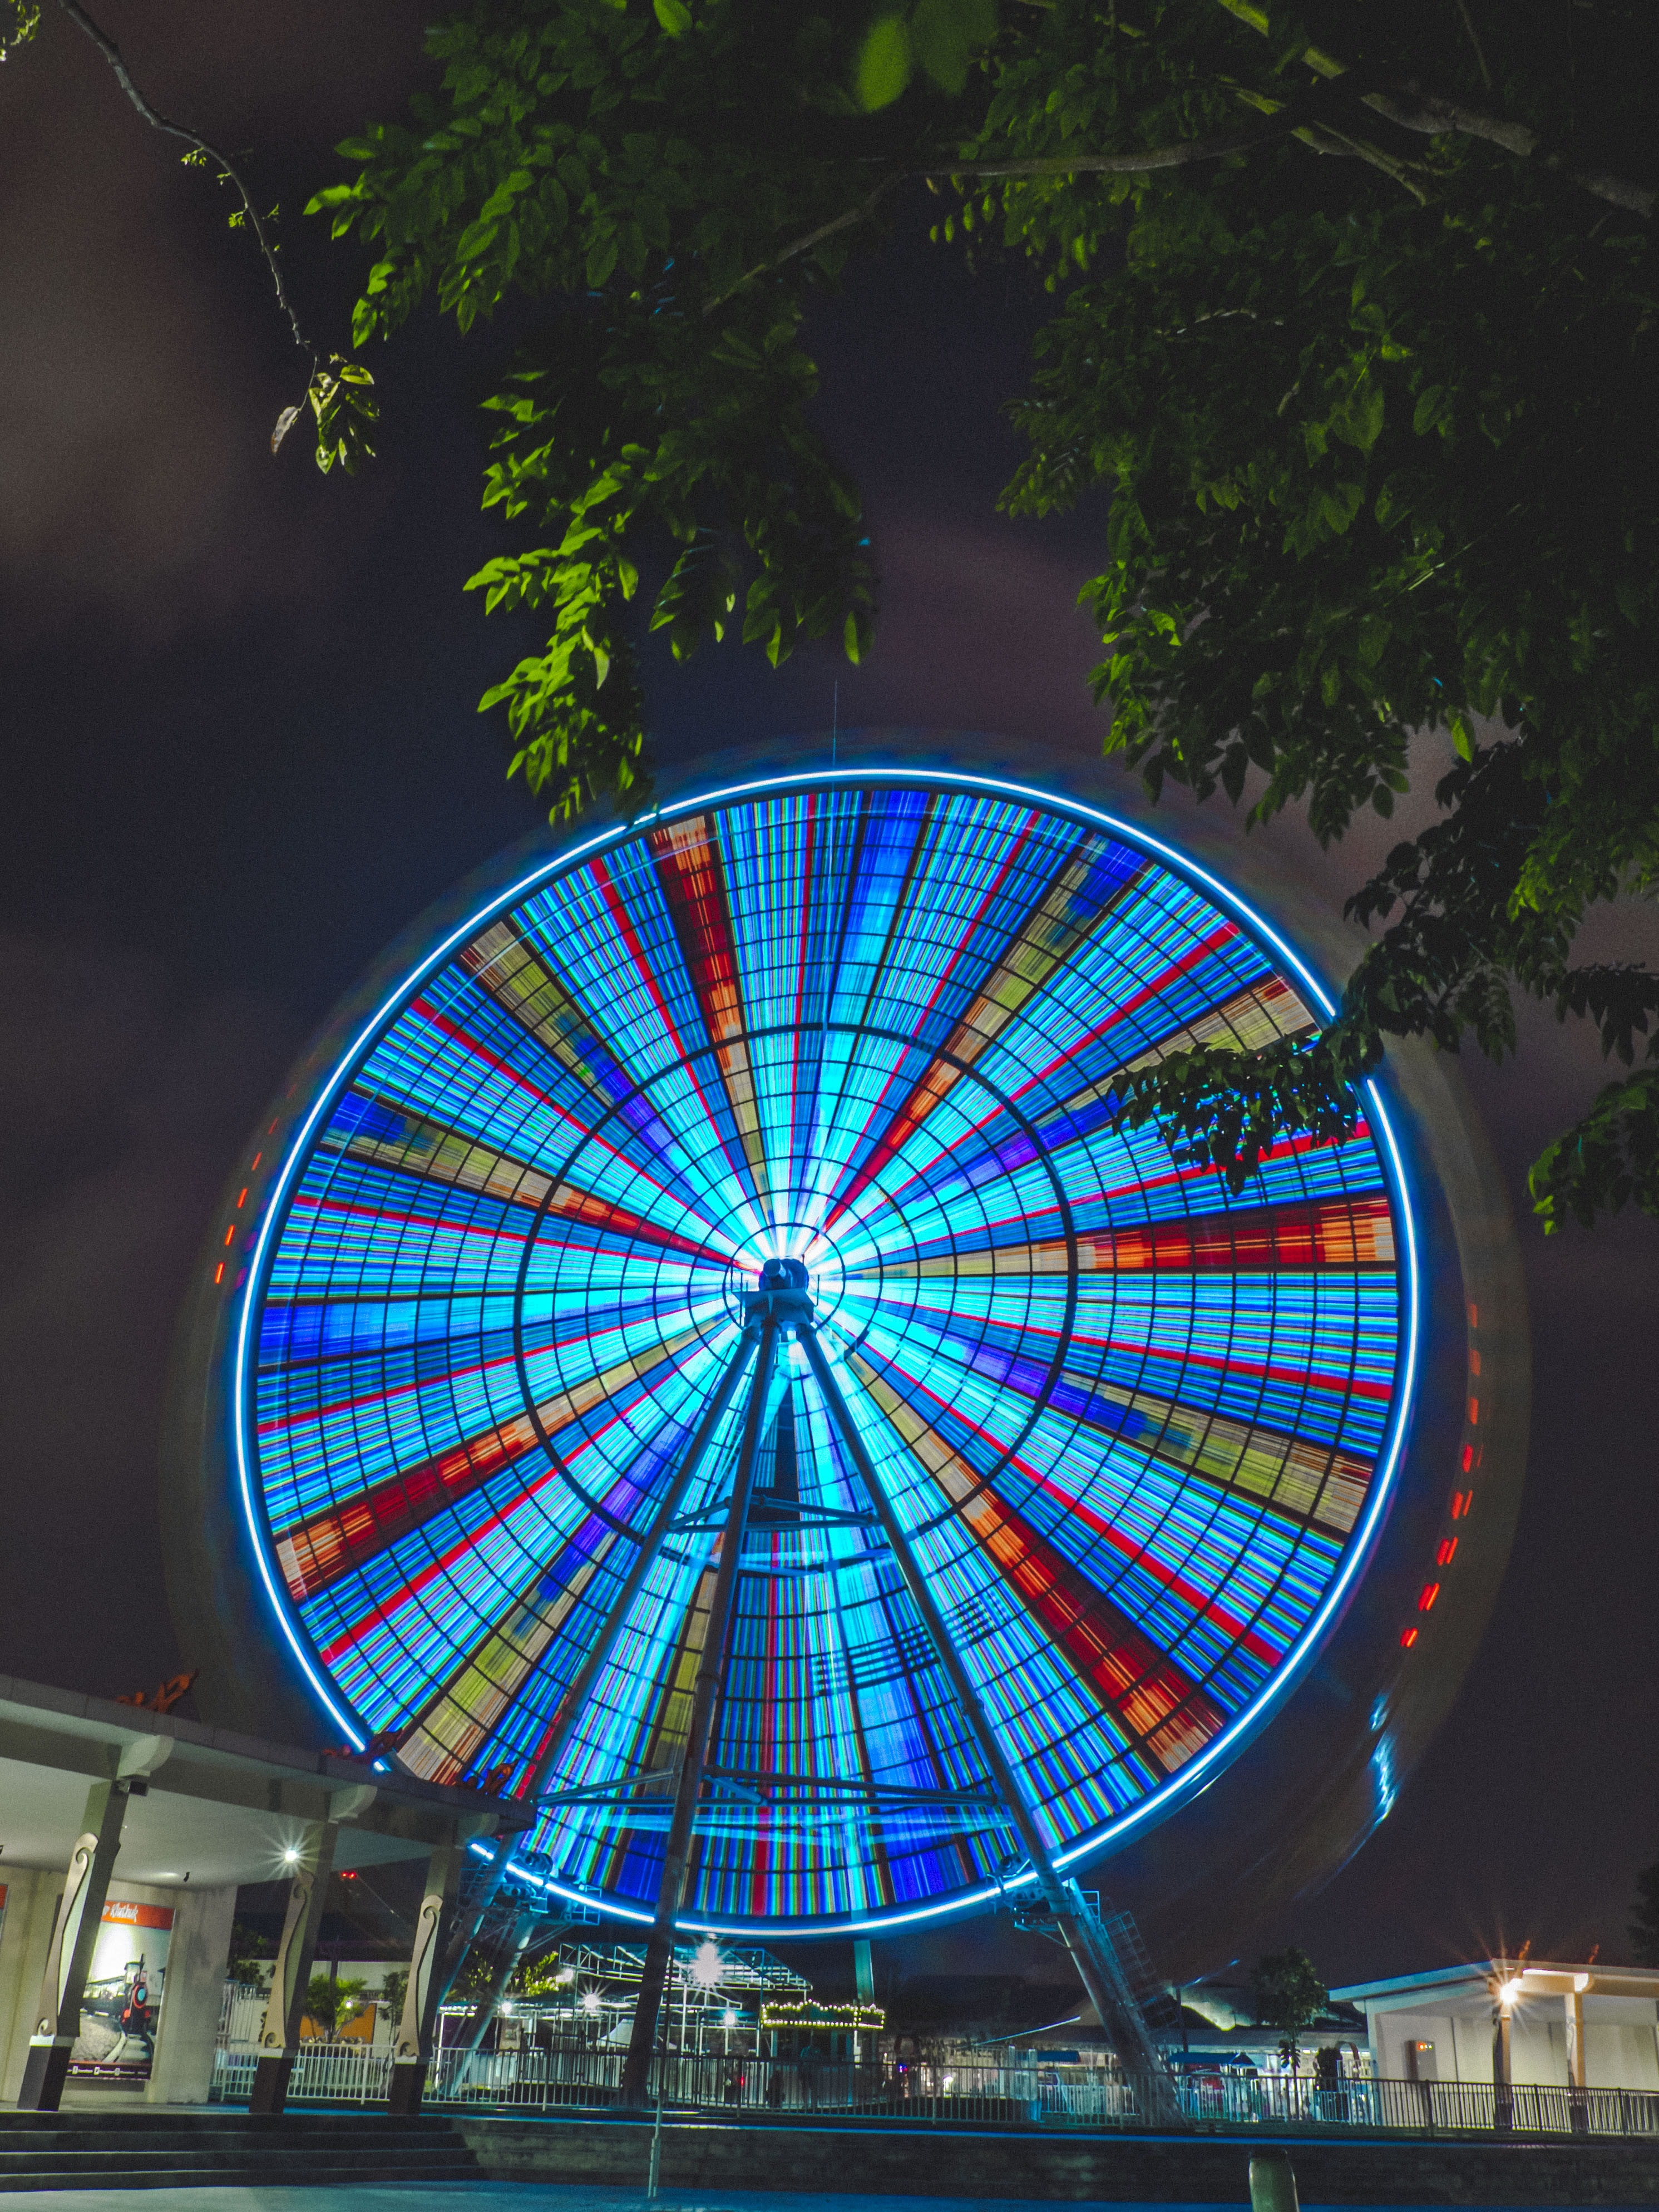 multicolored Ferris wheel during night time